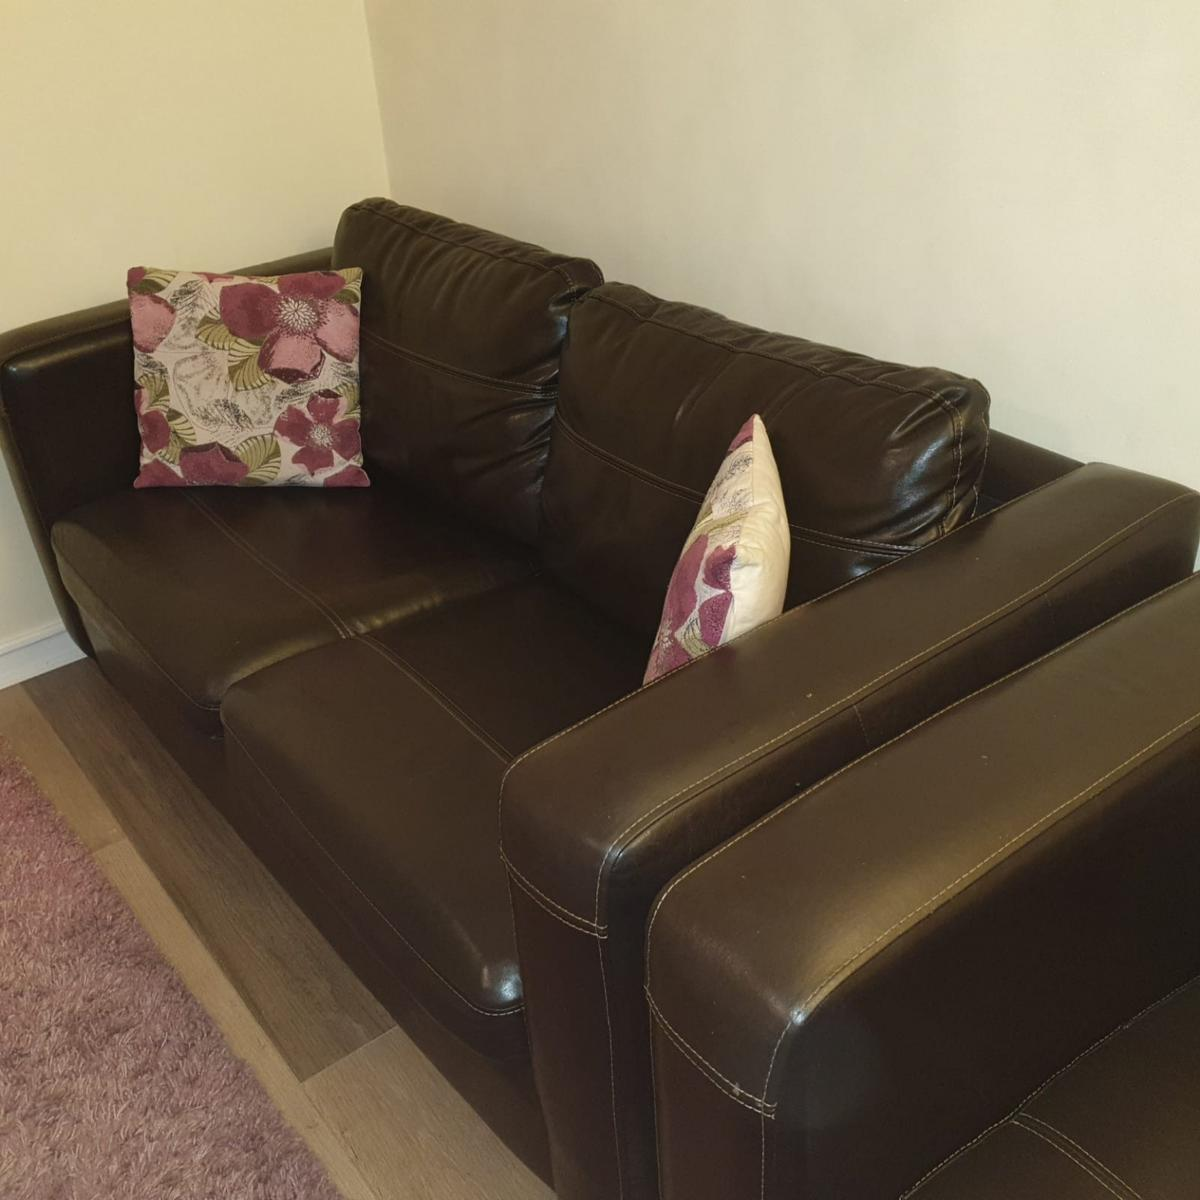 Chocolate Brown Leather Sofas In E3 London For 325 00